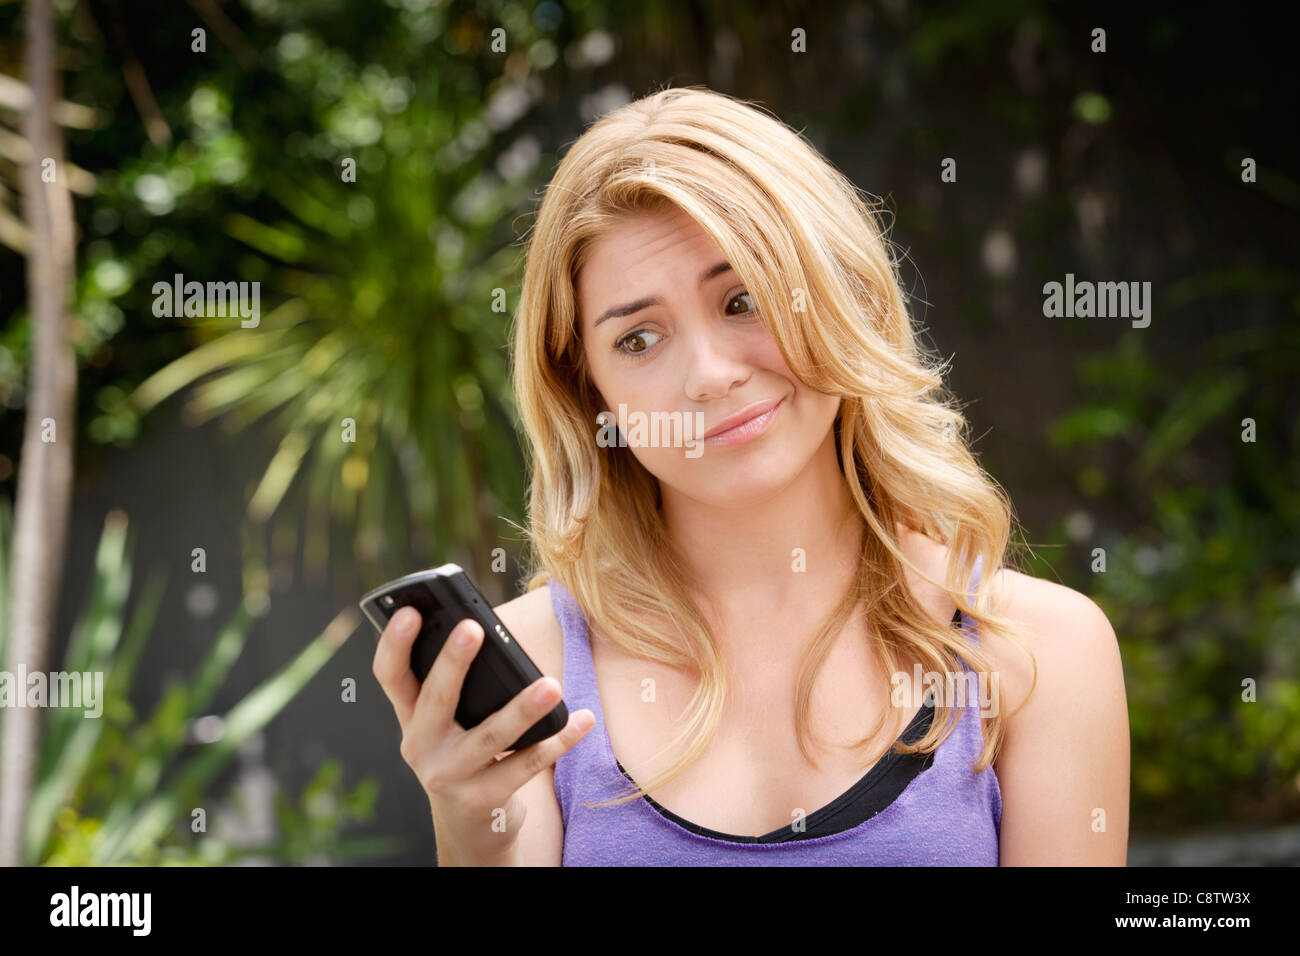 USA, California, Los Angeles, Young woman text-messaging, with facial expression - Stock Image